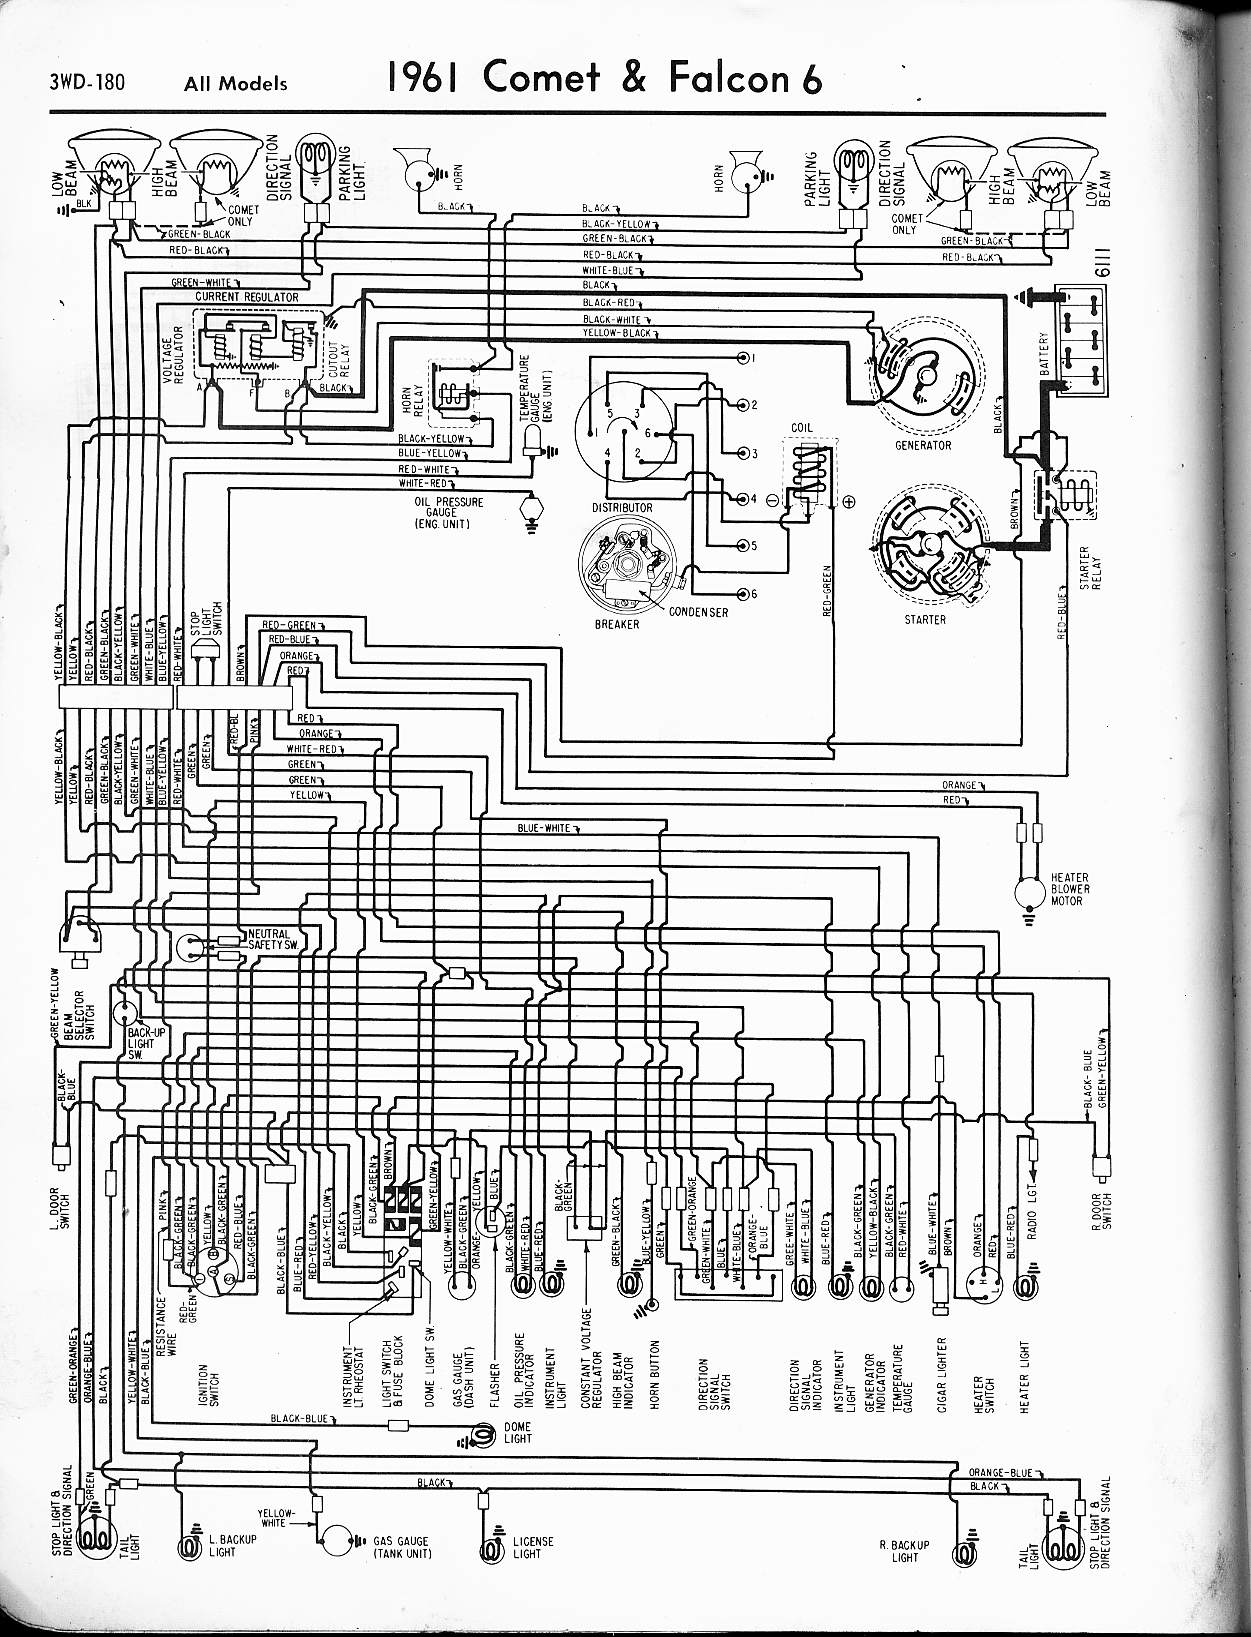 MWire5765 180 ford ranger & bronco ii electrical diagrams at the ranger station 1966 Ford Truck Wiring Diagram at mifinder.co